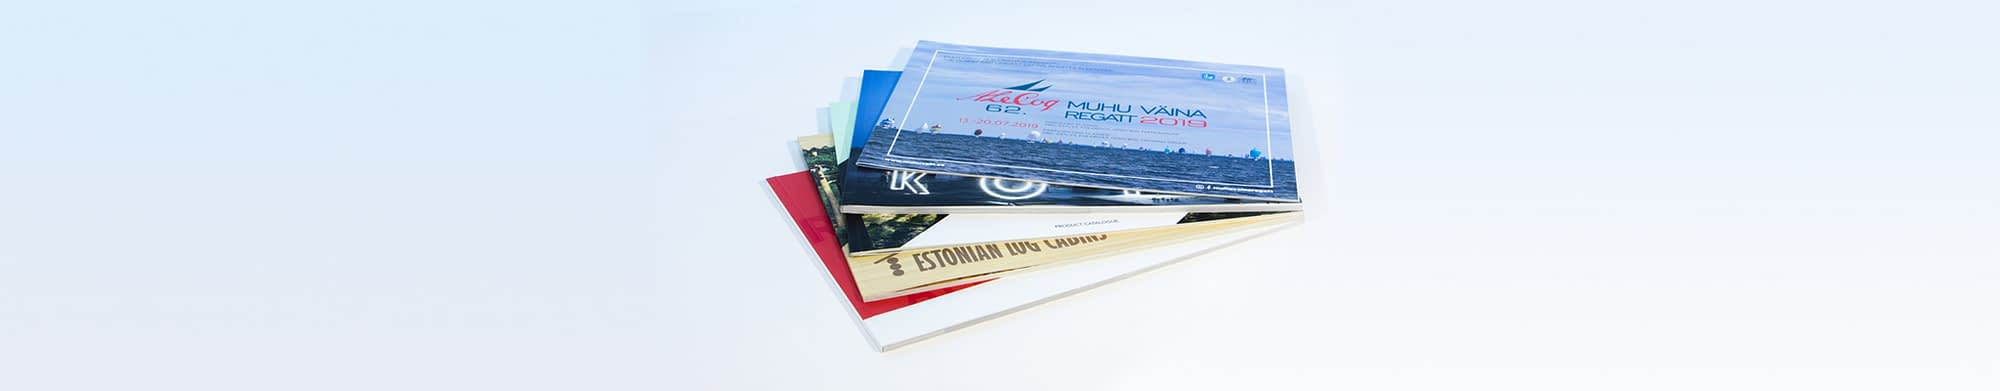 Catalogues page